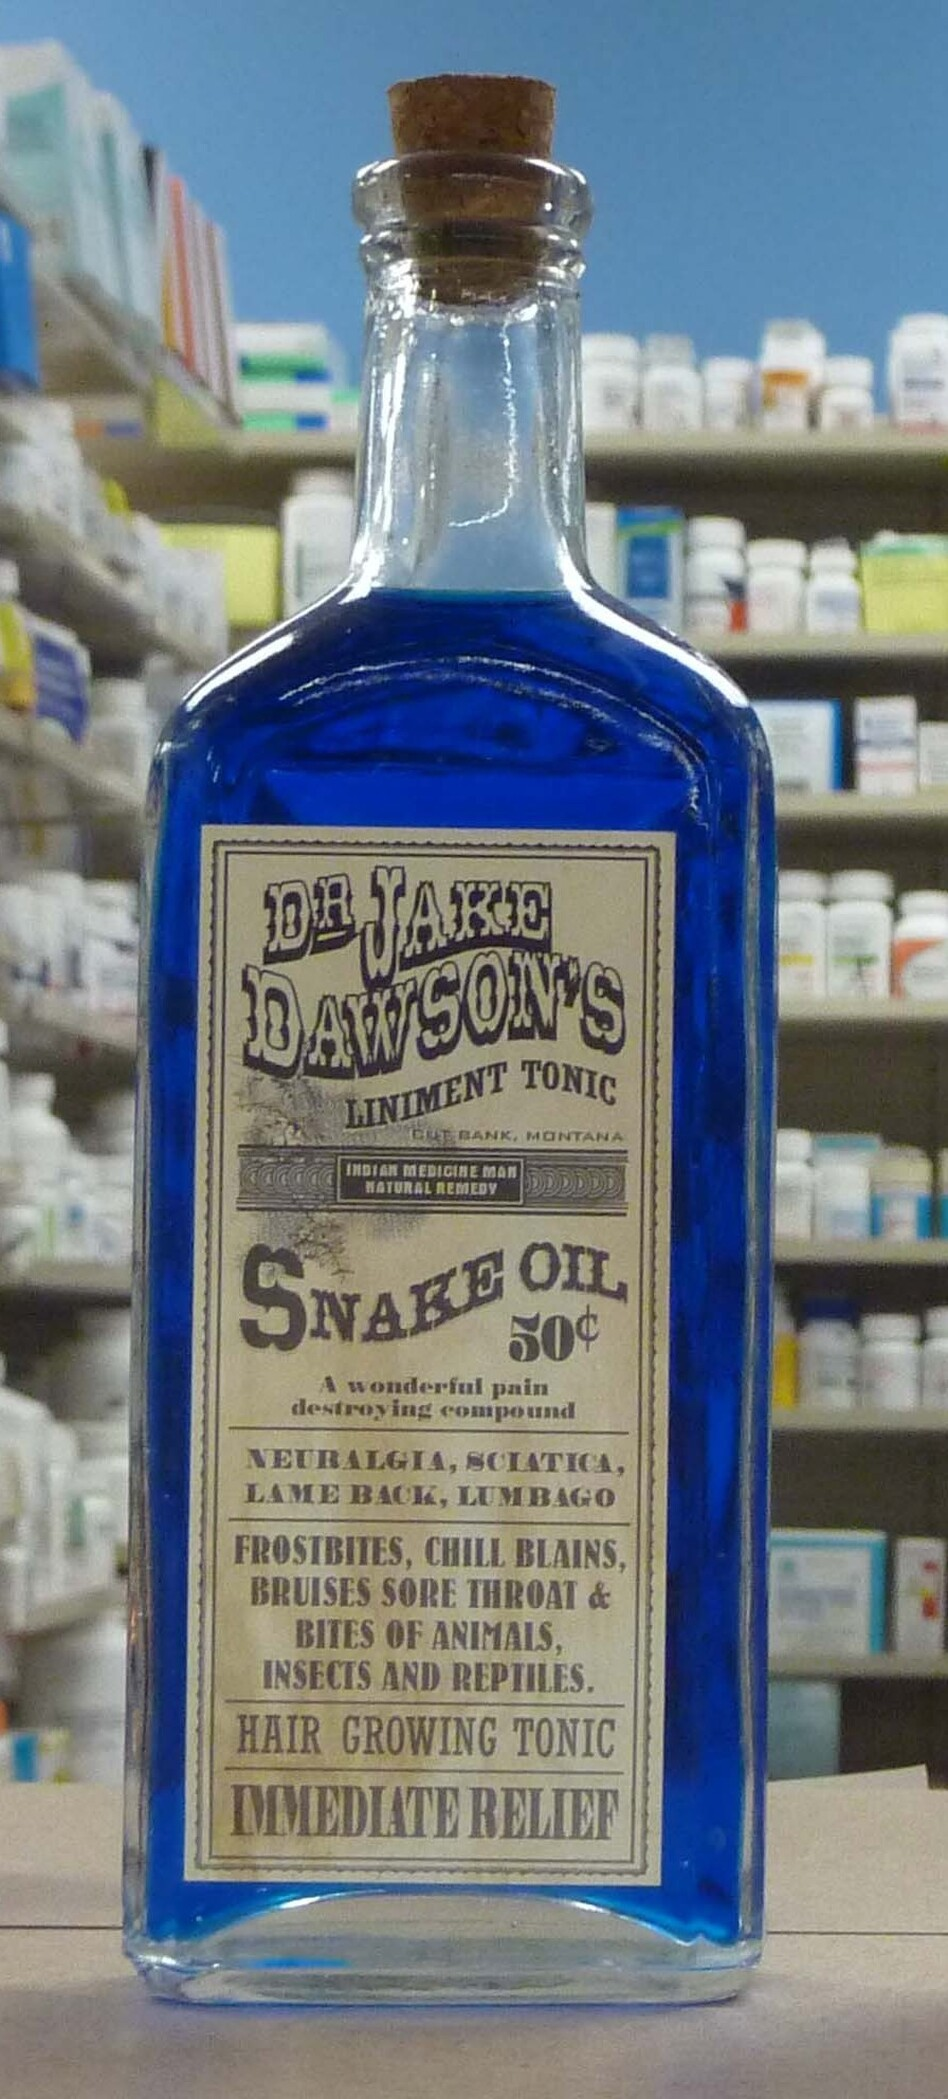 Made from the oil of the Chinese water snake, which is rich in the omega-3 acids that help reduce inflammation, snake oil in its original form was effective, especially when used to treat arthritis and bursitis. (Jagrap/Flickr)